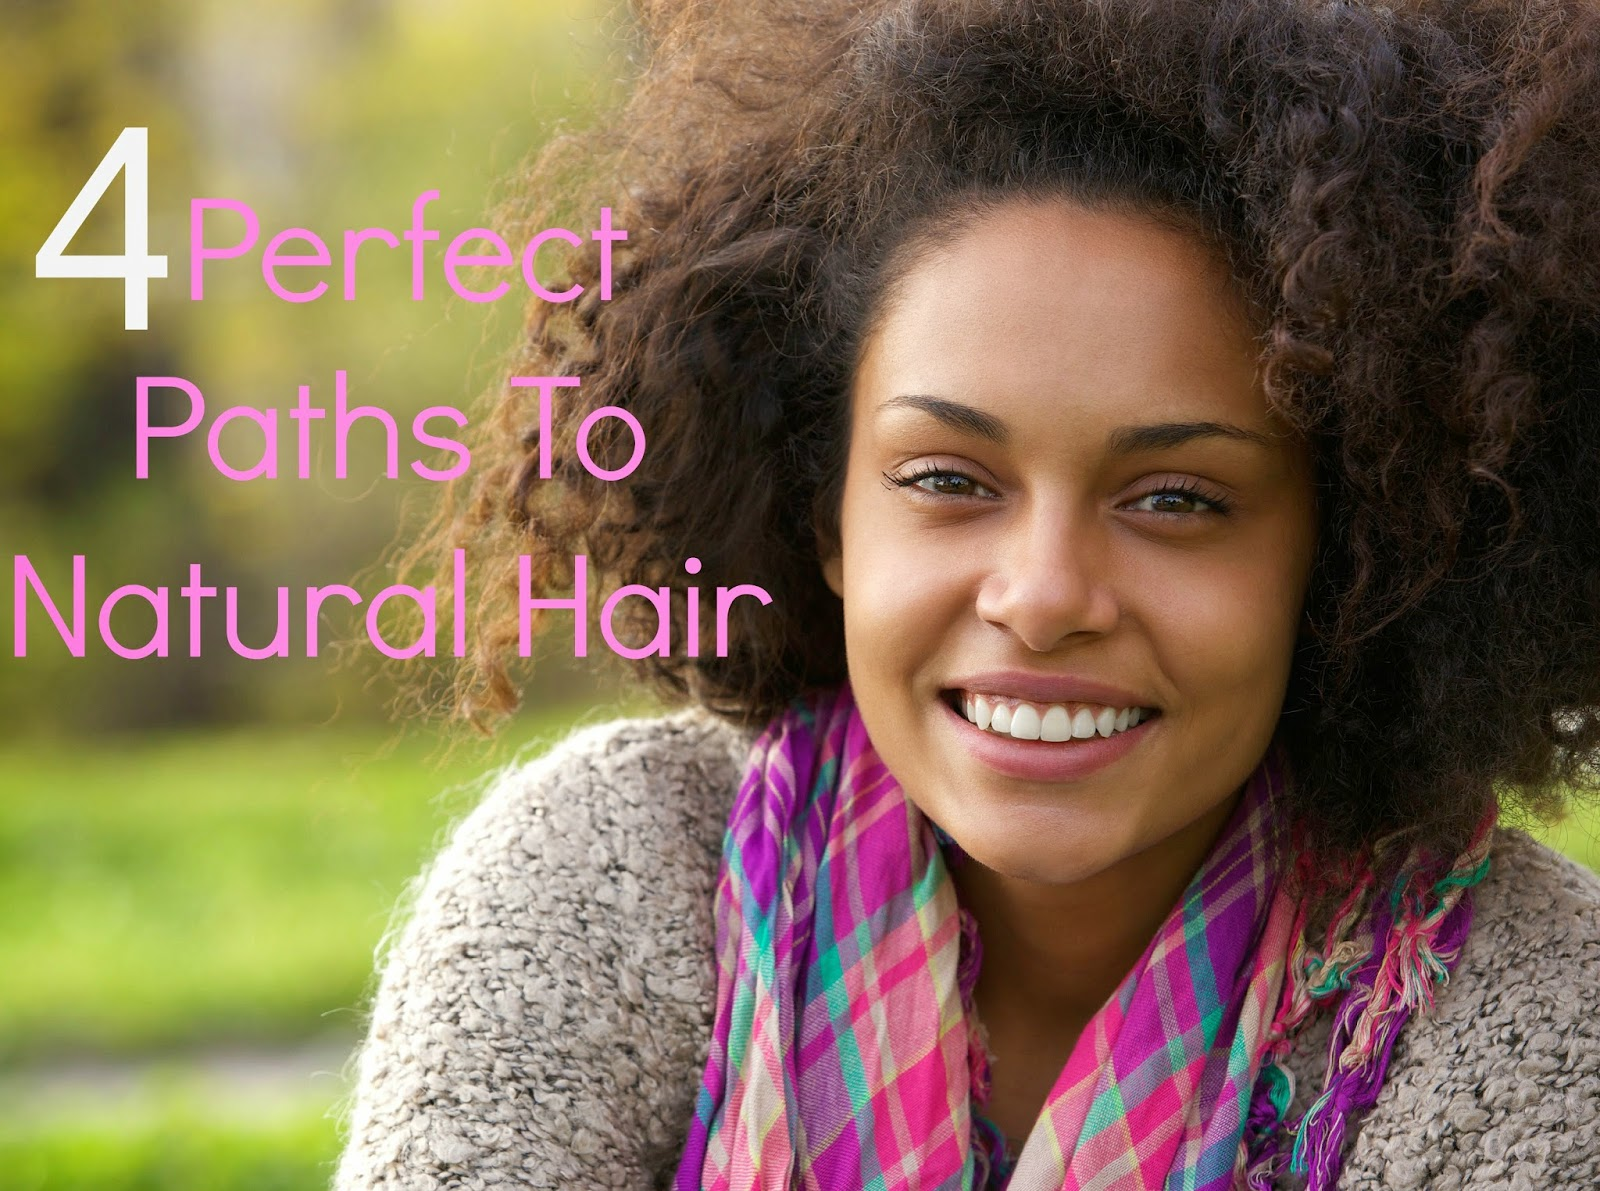 4 Perfect Paths To Natural Hair